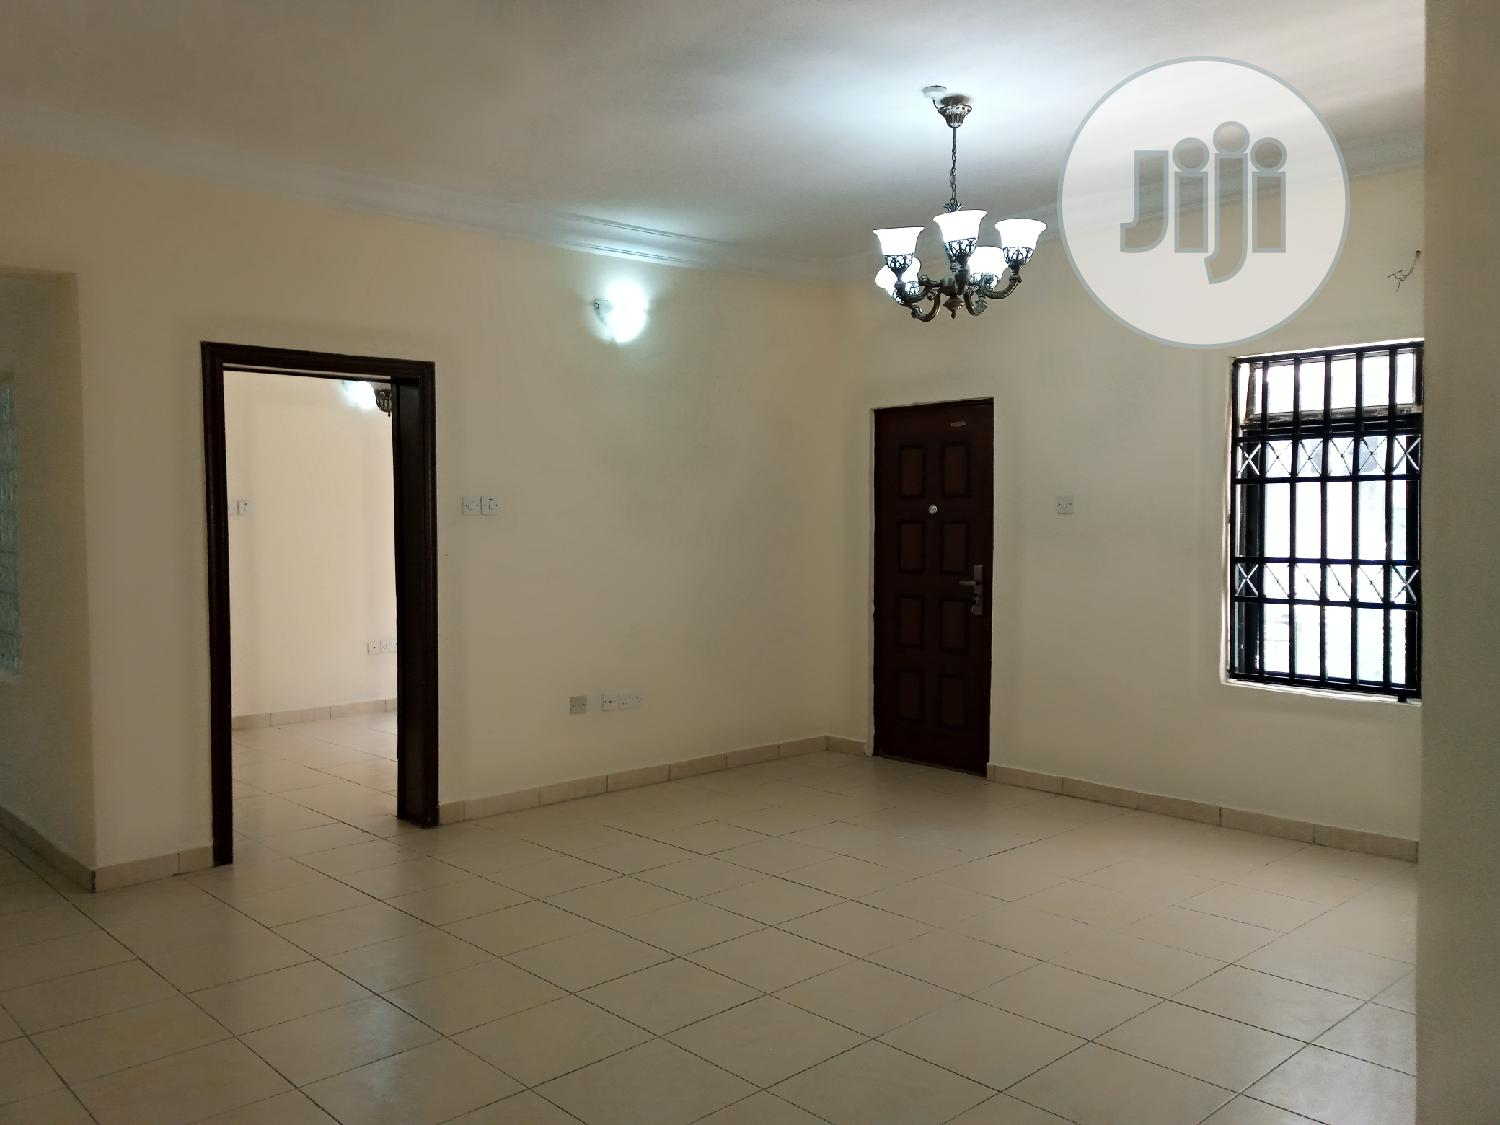 Serviced 3 Bedroom Flat With A Room B.Q Located In Oniru Est | Houses & Apartments For Rent for sale in Victoria Island, Lagos State, Nigeria